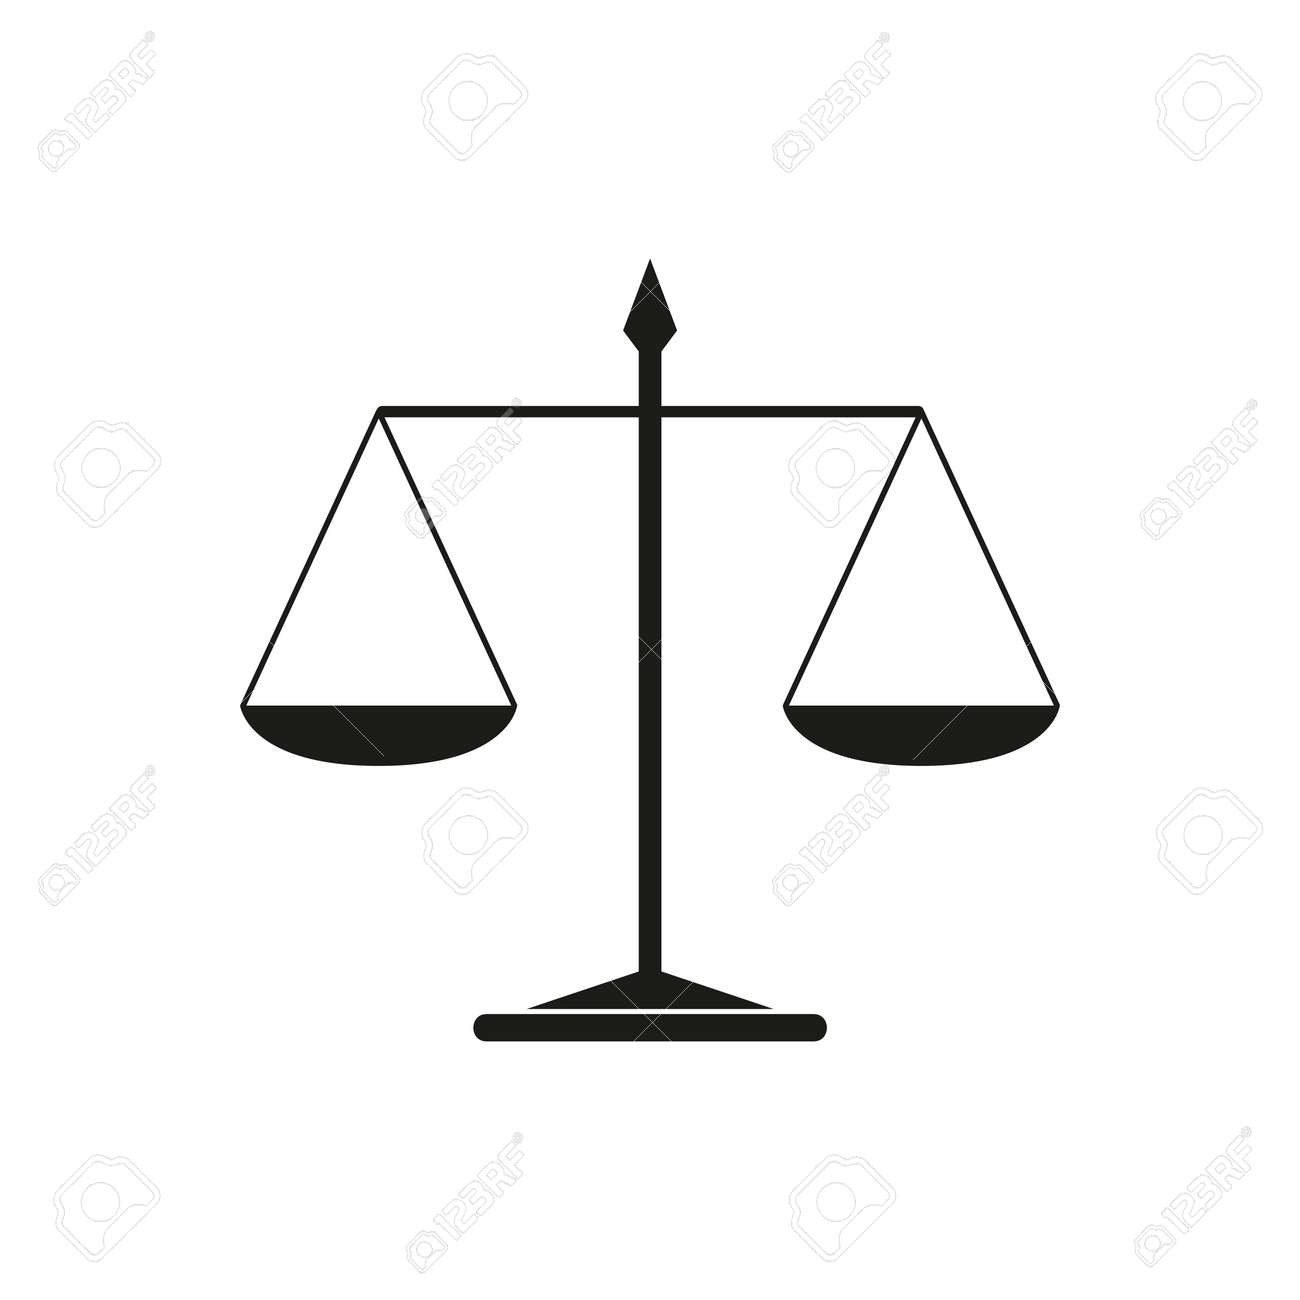 simple scales justice icon on white background - 169232473